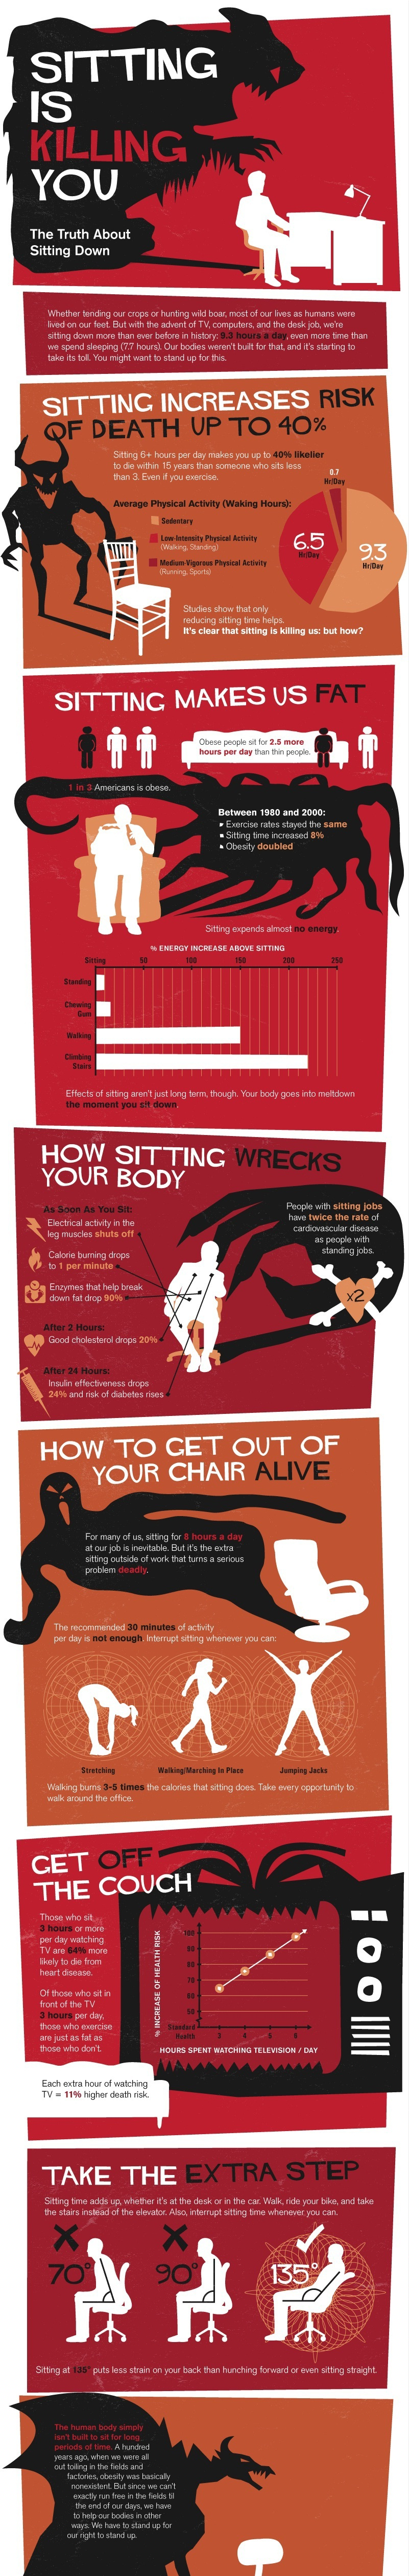 reason-why-sitting-is-killing-you-1.jpg